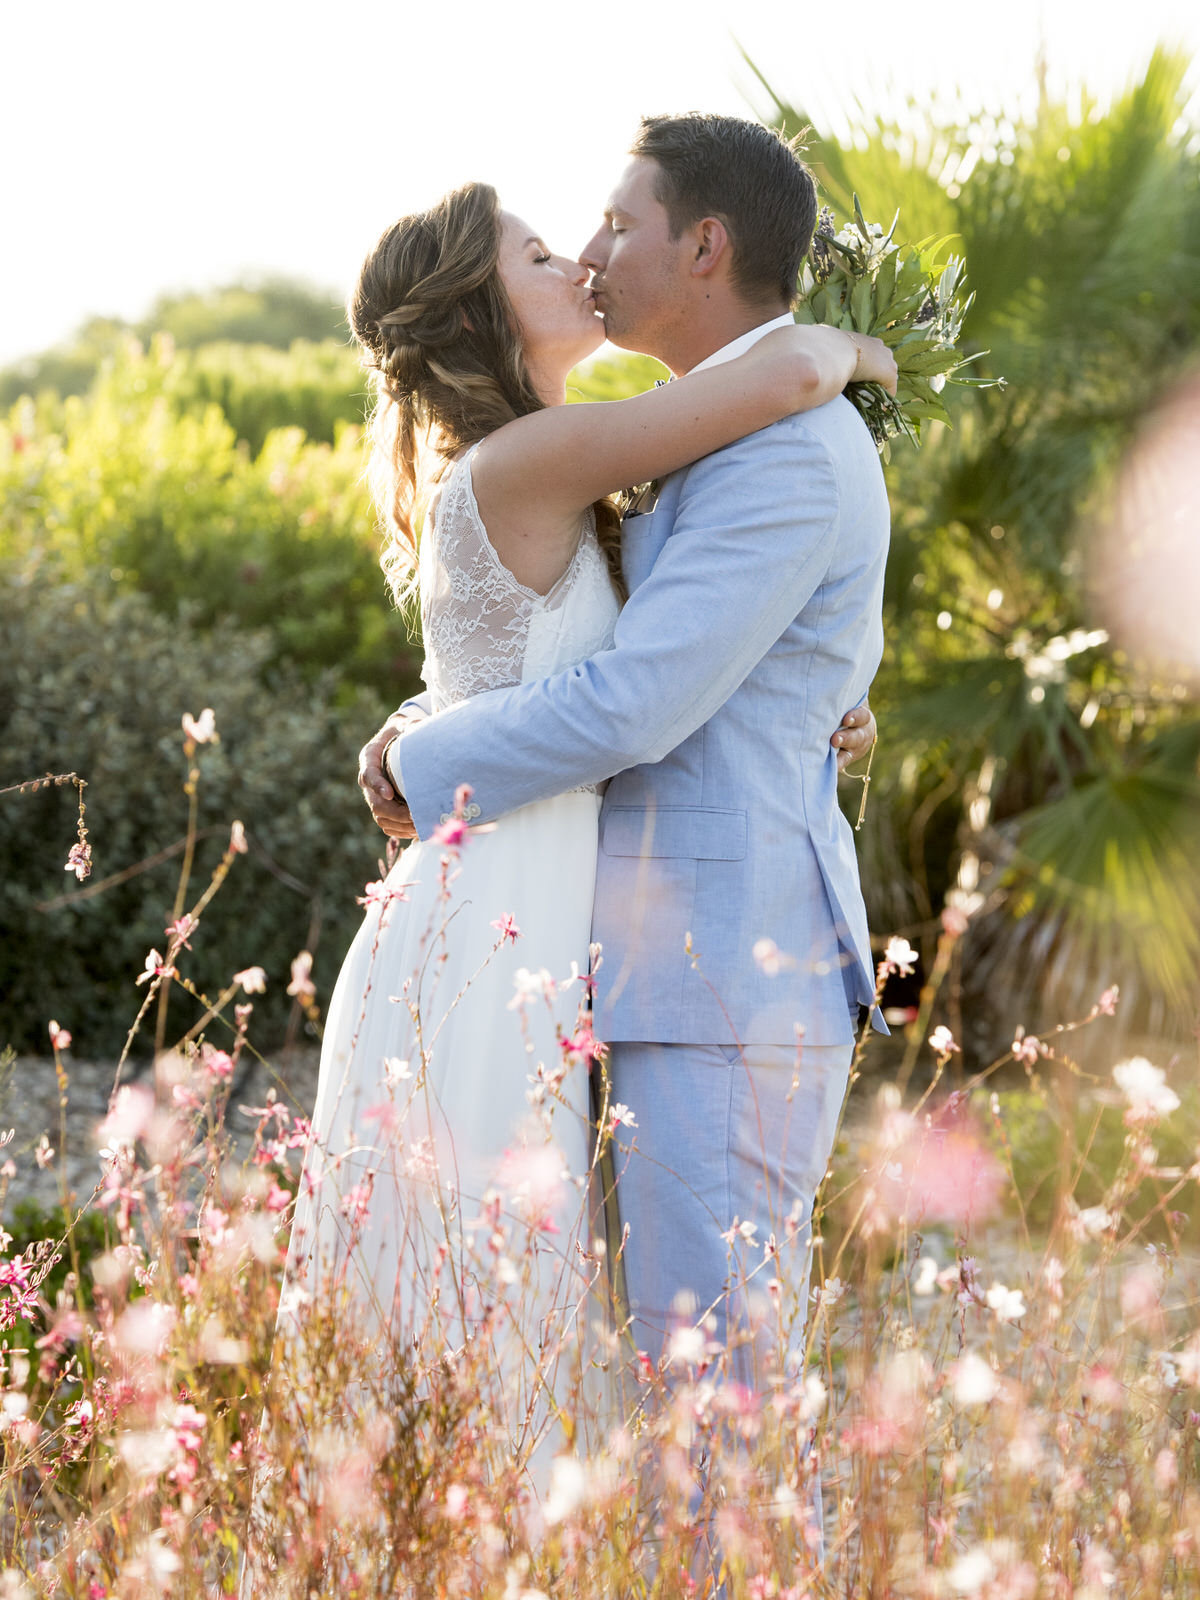 Blush-Photography-Algarve-Connie-Markus-19